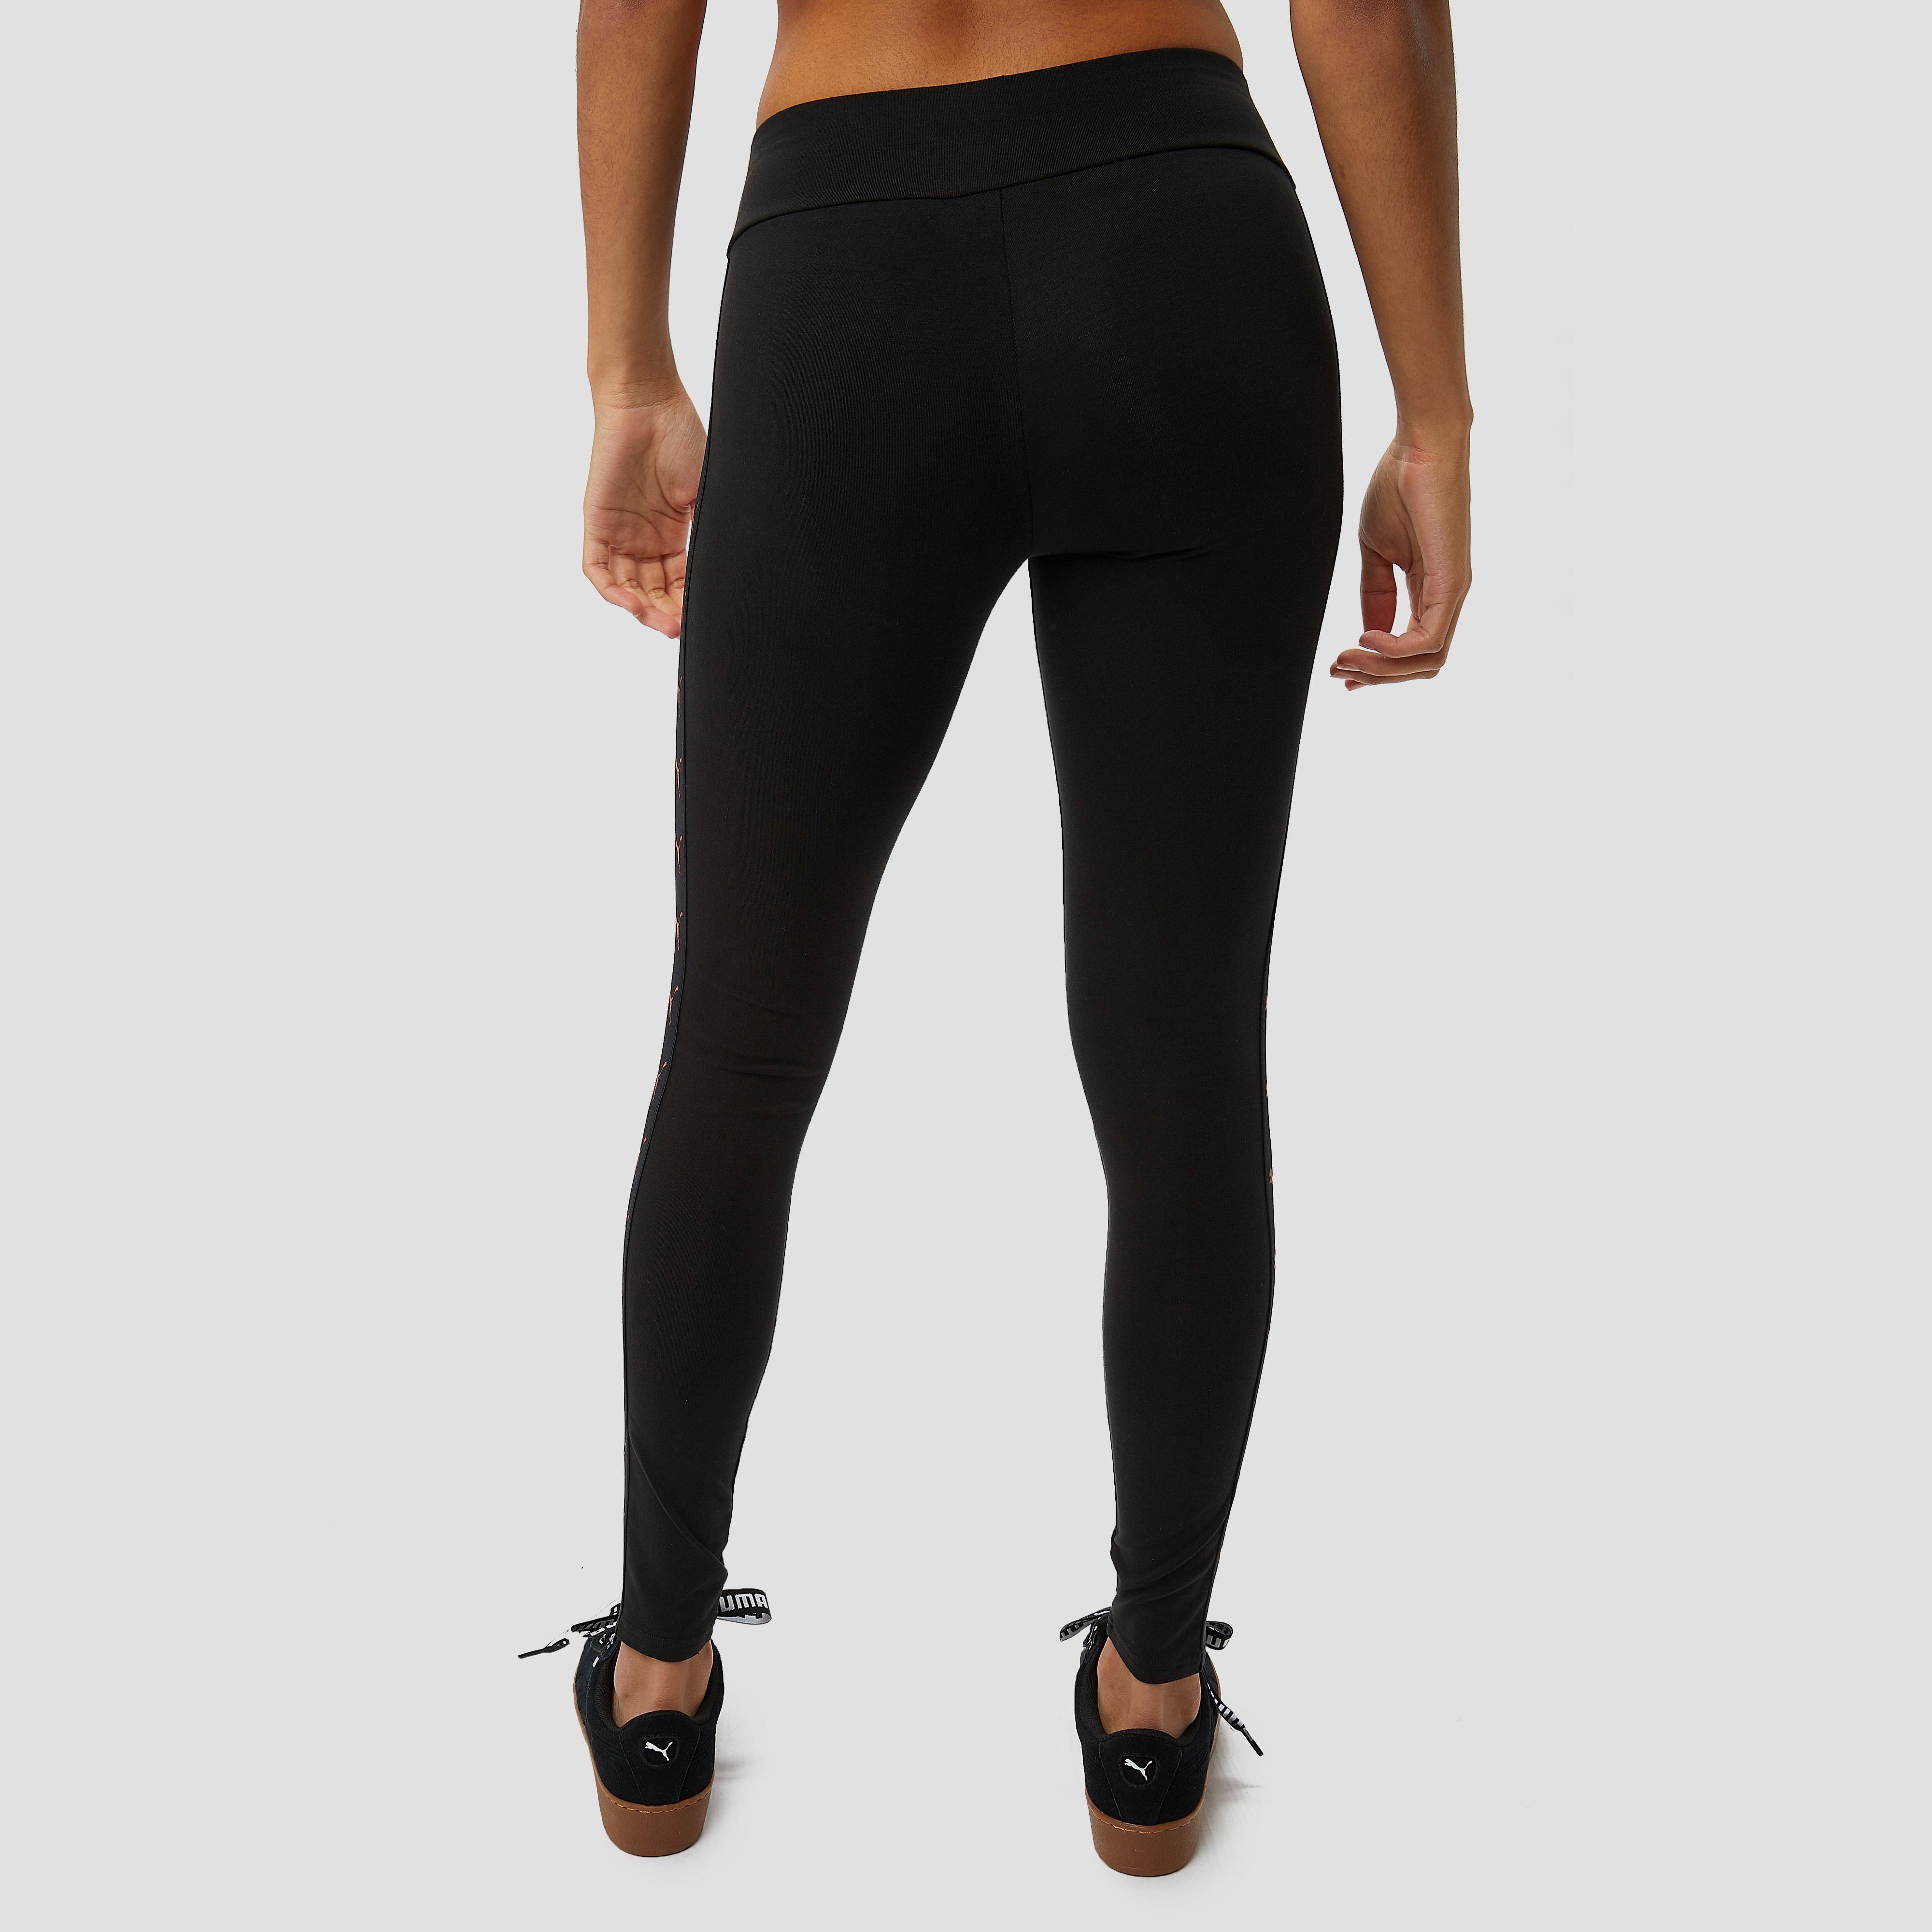 PUMA TAPED TIGHT ZWART DAMES